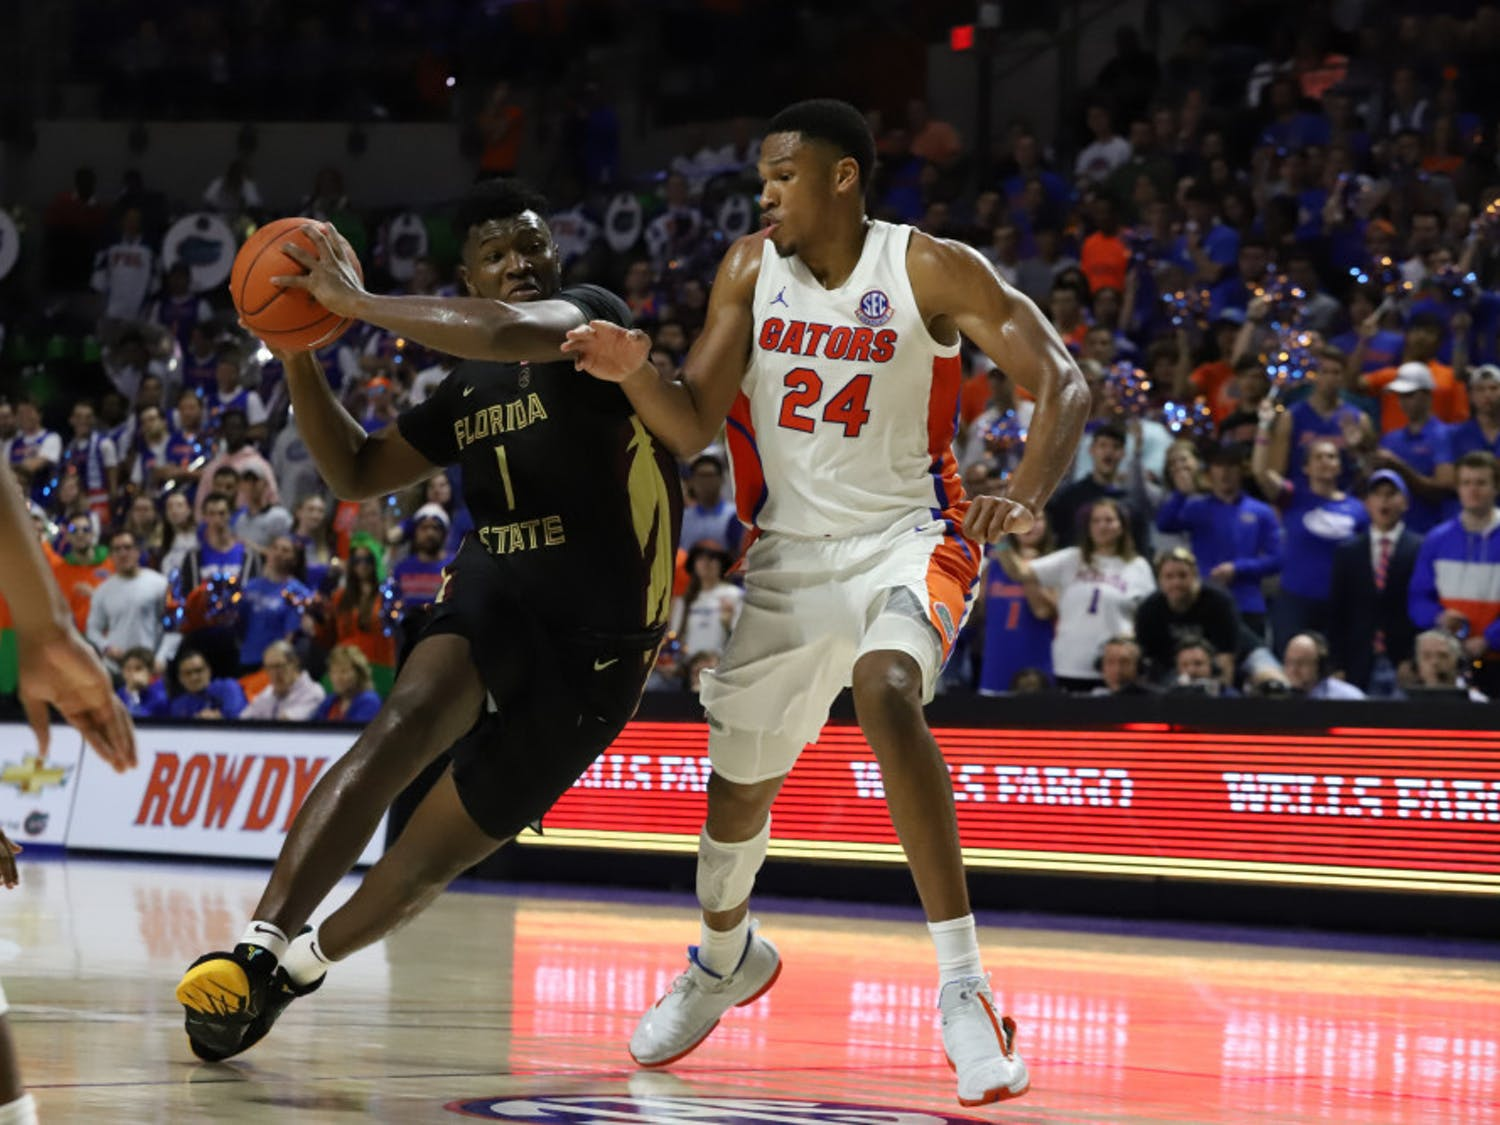 Center Kerry Blackshear Jr. was ejected 30 seconds into the second half of Thursday's game against St. Joseph's.